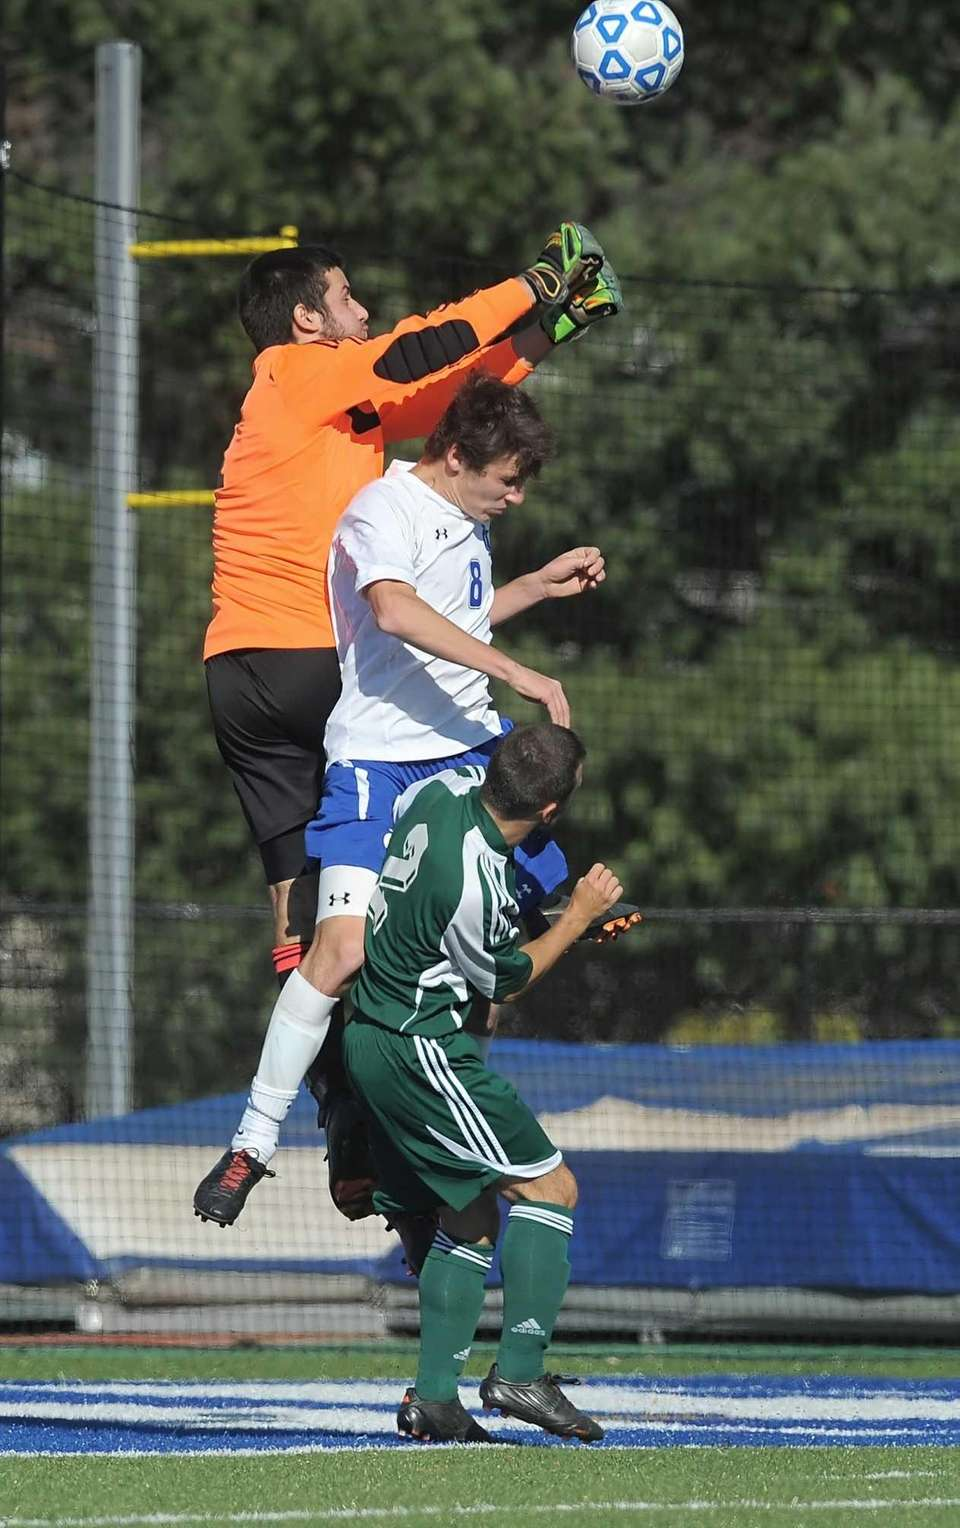 Carle Place's goalkeeper John Guzzo, top, punches the